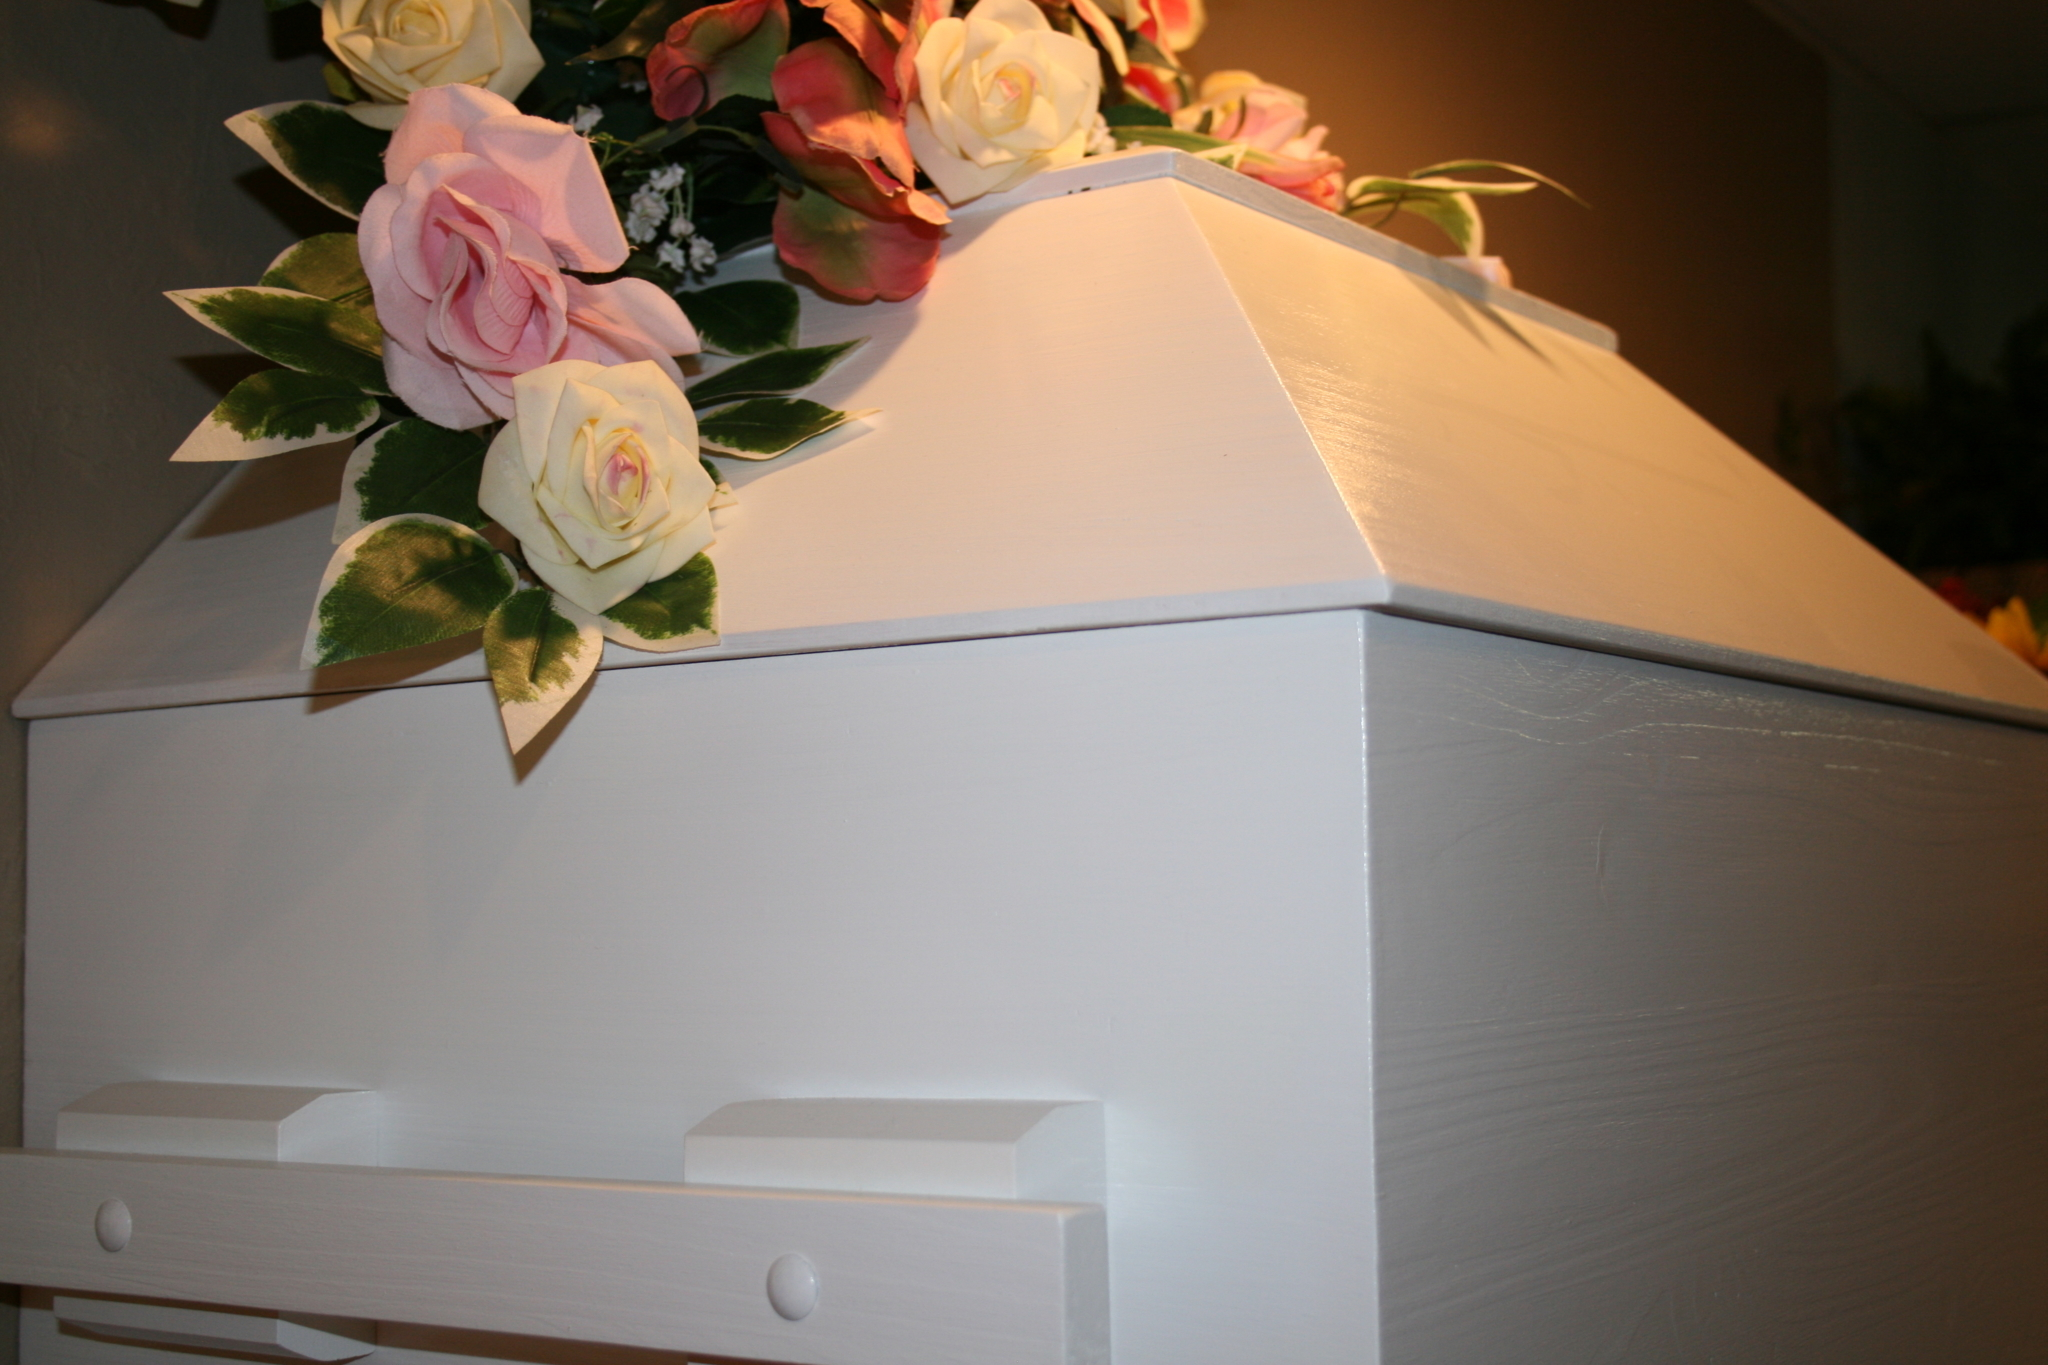 Grand Forks Funeral Home & Cremation Centre Ltd in Grand Forks